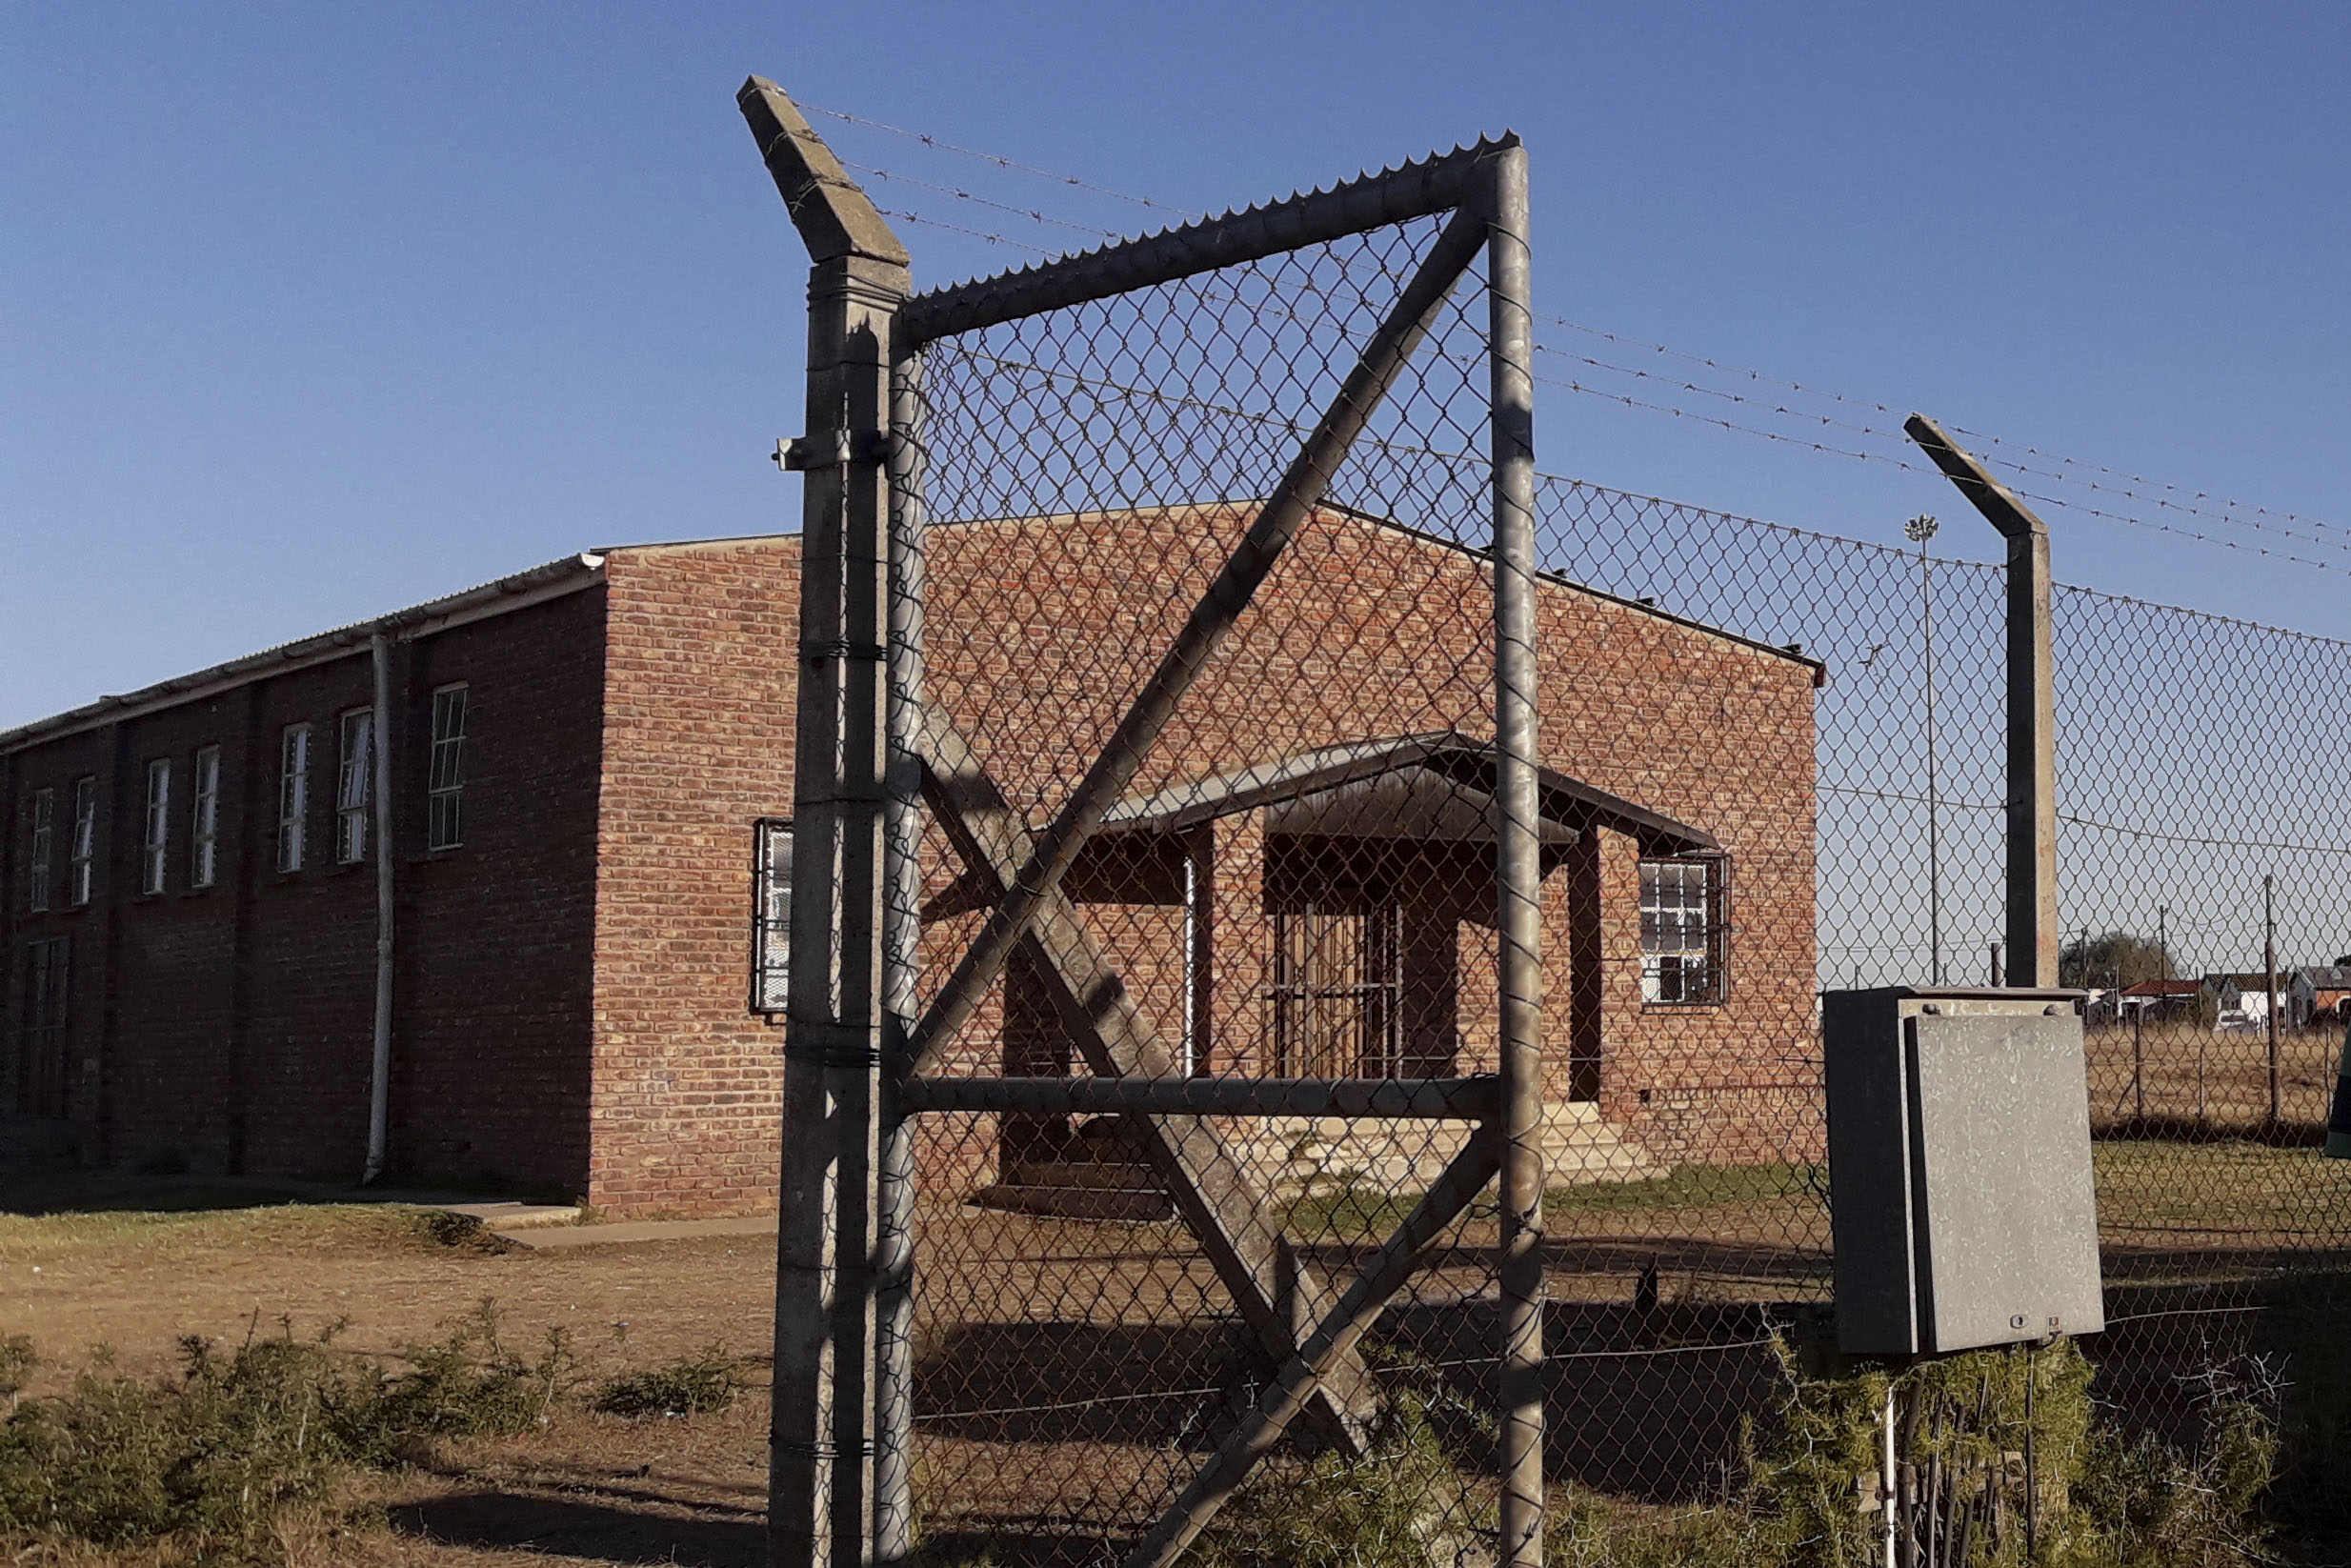 23 July 2020: The town's sole paralegal, Tuse Manene, works out of this abandoned and derelict building which has no electricity